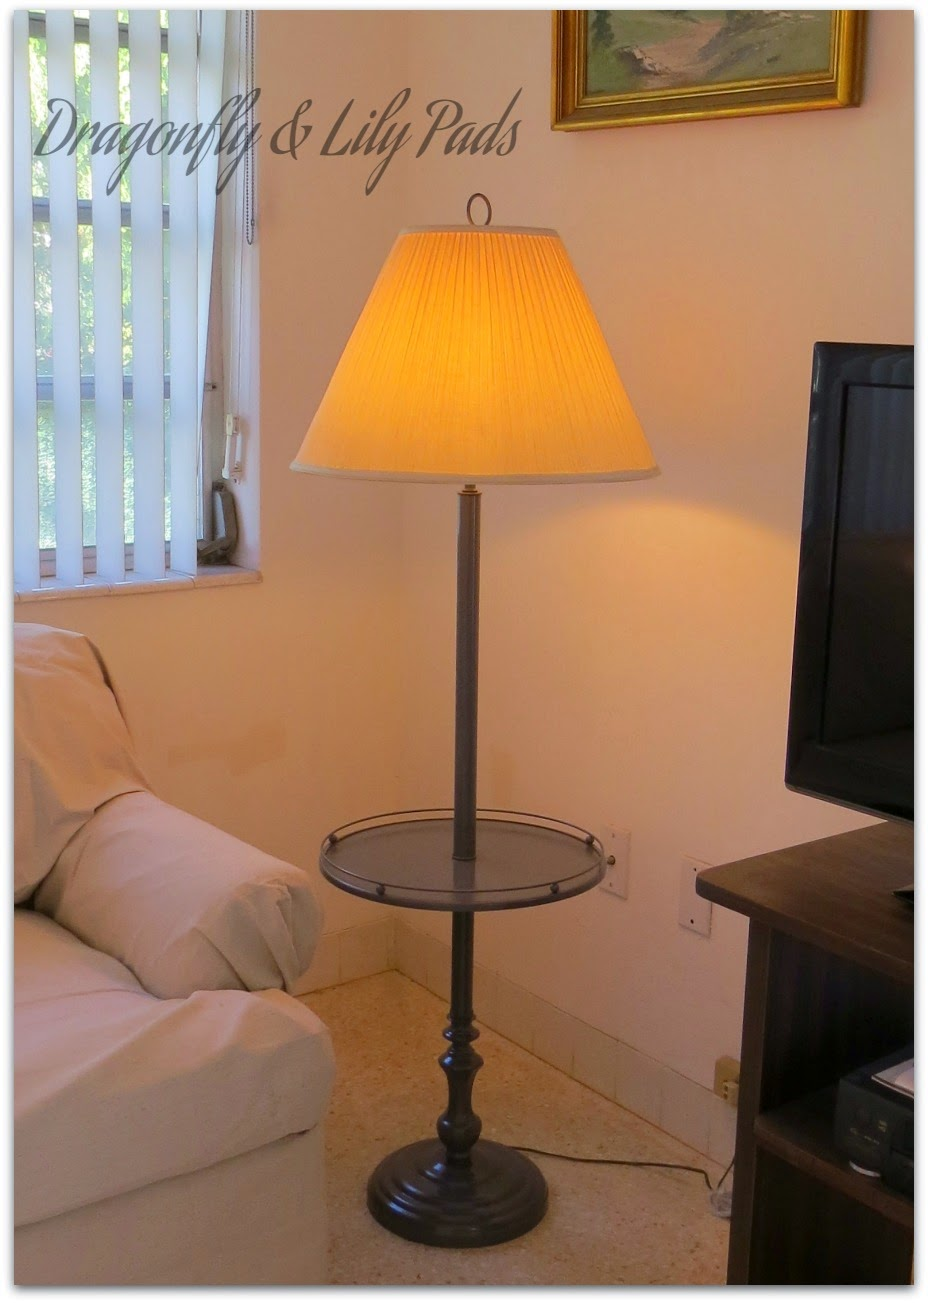 Rust-Oleum 2 X Coverage Paint, Rusted Lamp, 1 Can, 1 Coat, Grey